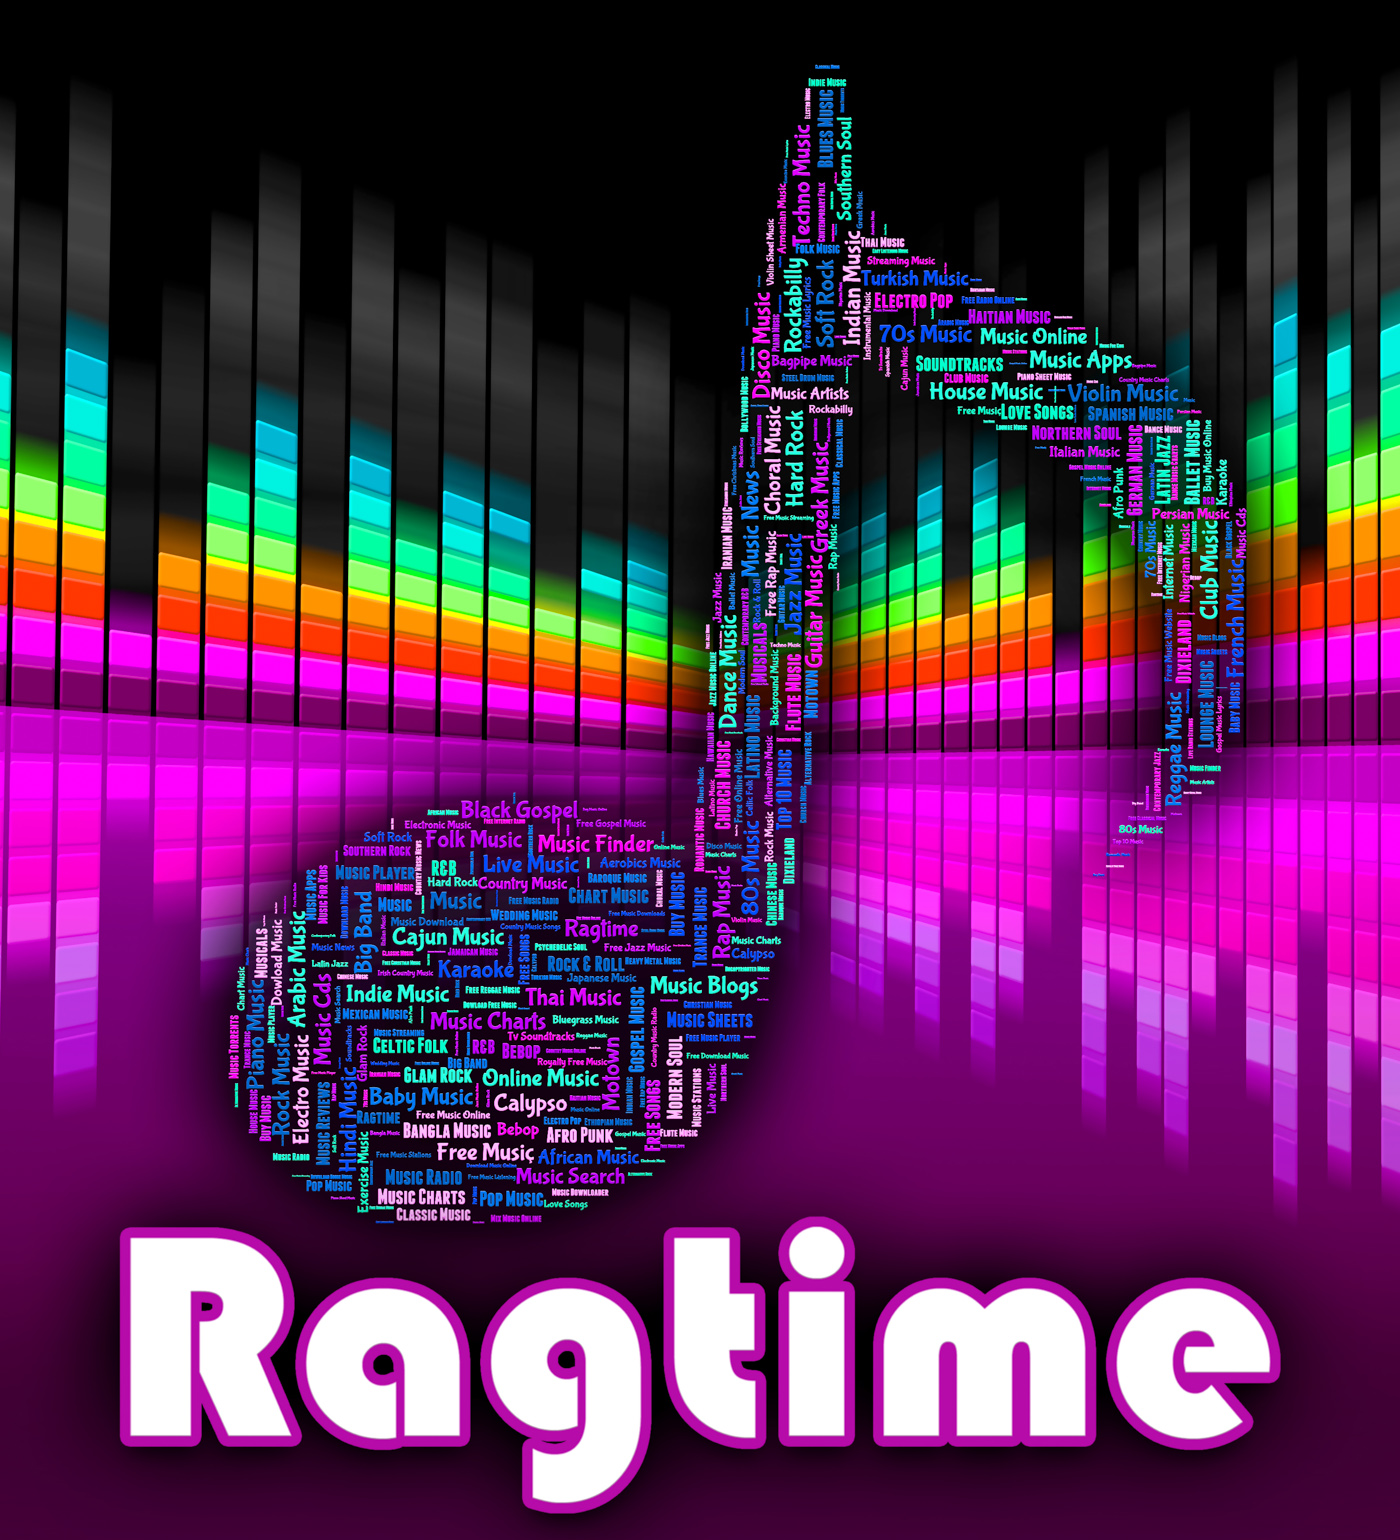 Ragtime Music Means Sound Tracks And Audio, Acoustic, Rhythm, Tune, Track, HQ Photo